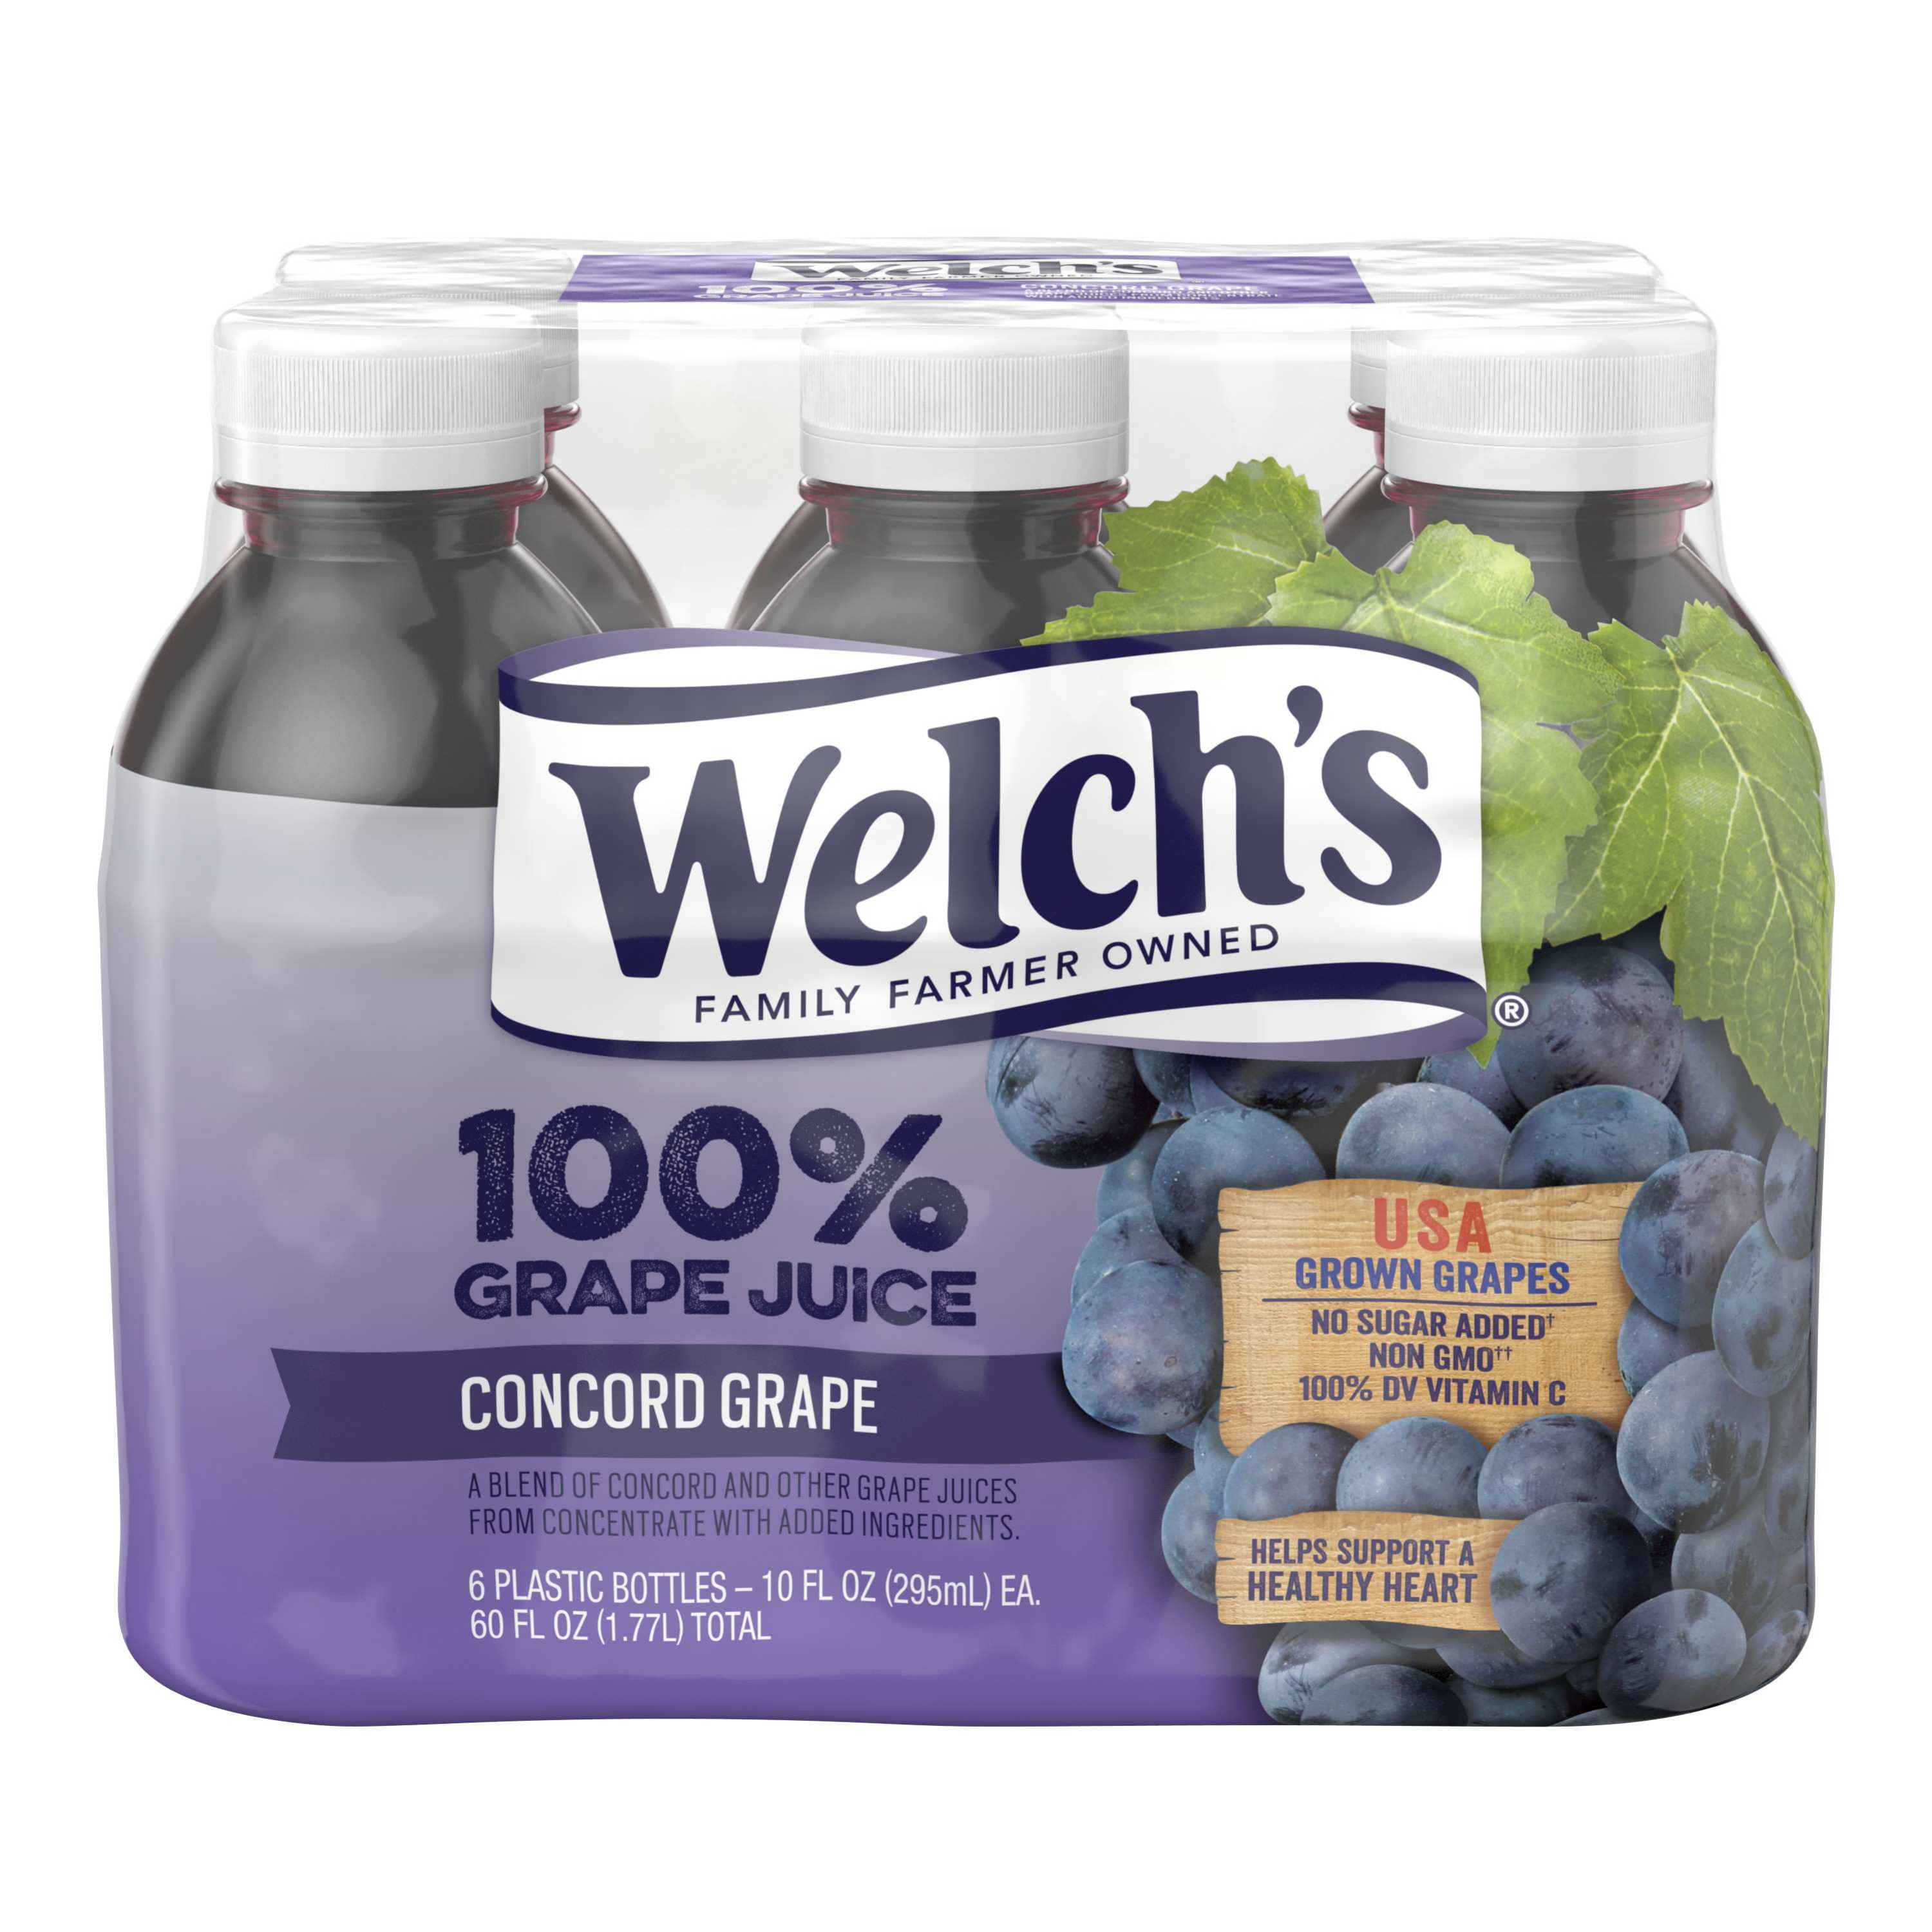 Welch's 100% Juice, Concord Grape, 10 Fl Oz, 6 Count